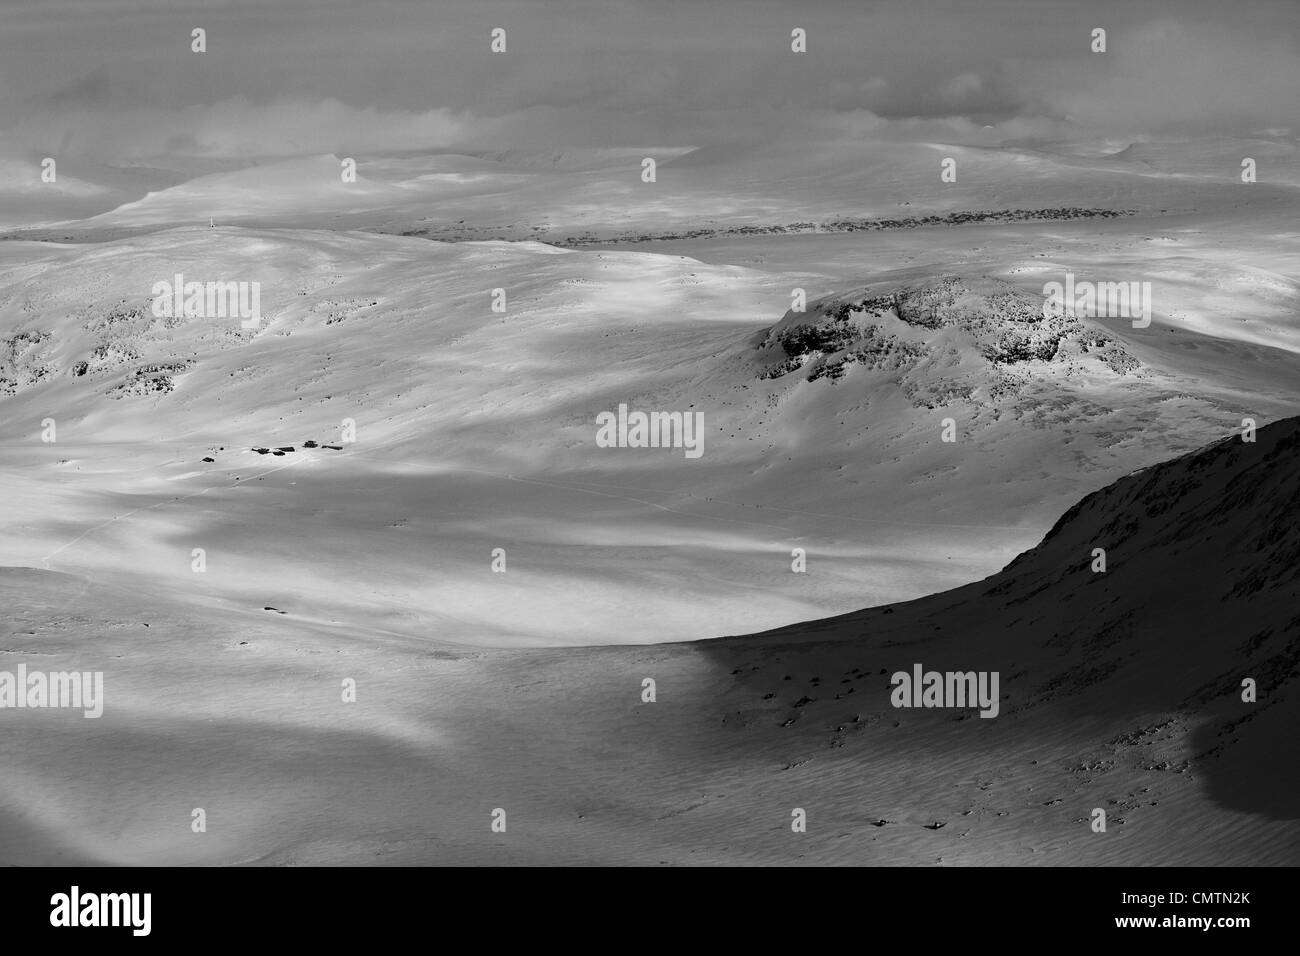 Land covered with snow (B&W) - Stock Image